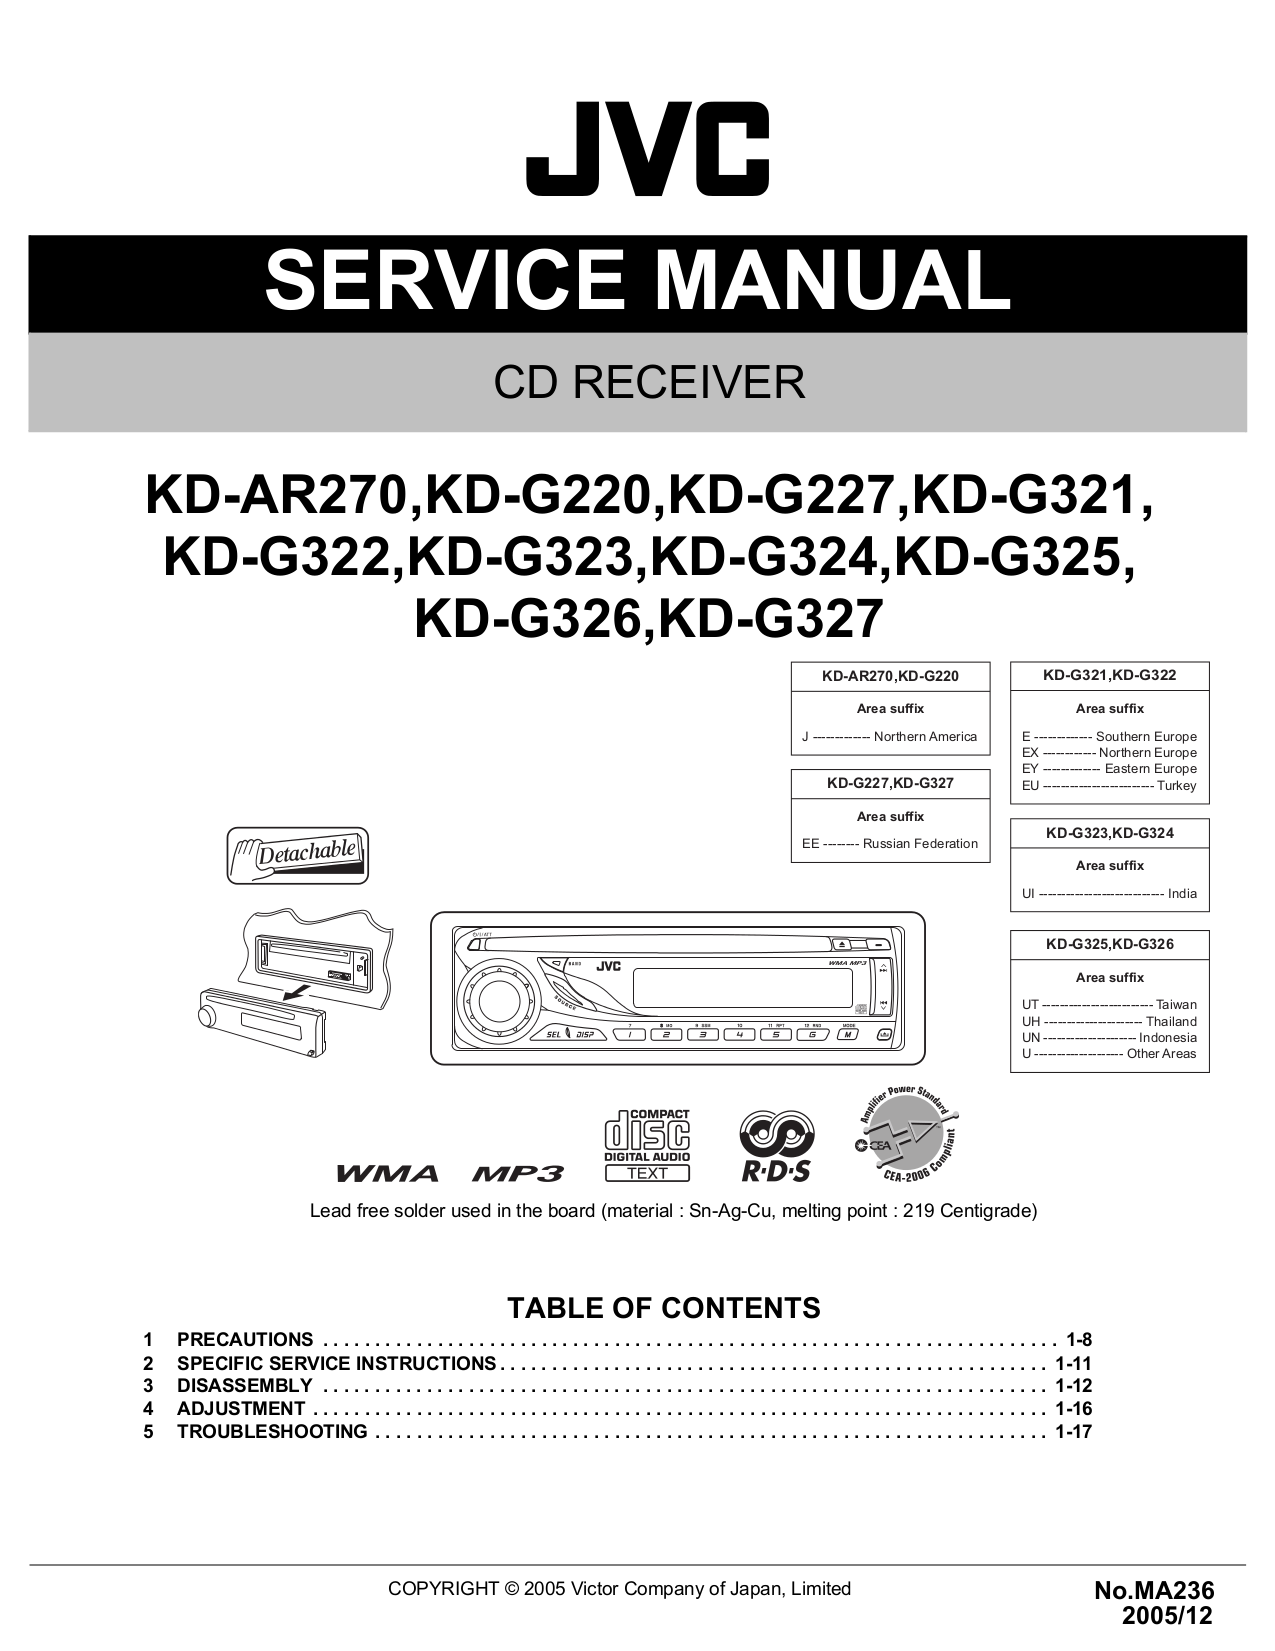 301398d1352582317 Magnitola Avtozvuk jvc kd ar270 kd g220 g227 g321 g322 g323 g324 g325 g326 g327.pdf 0 pdf manual for jvc car receiver kd s51 jvc kd r200 wiring diagram at edmiracle.co